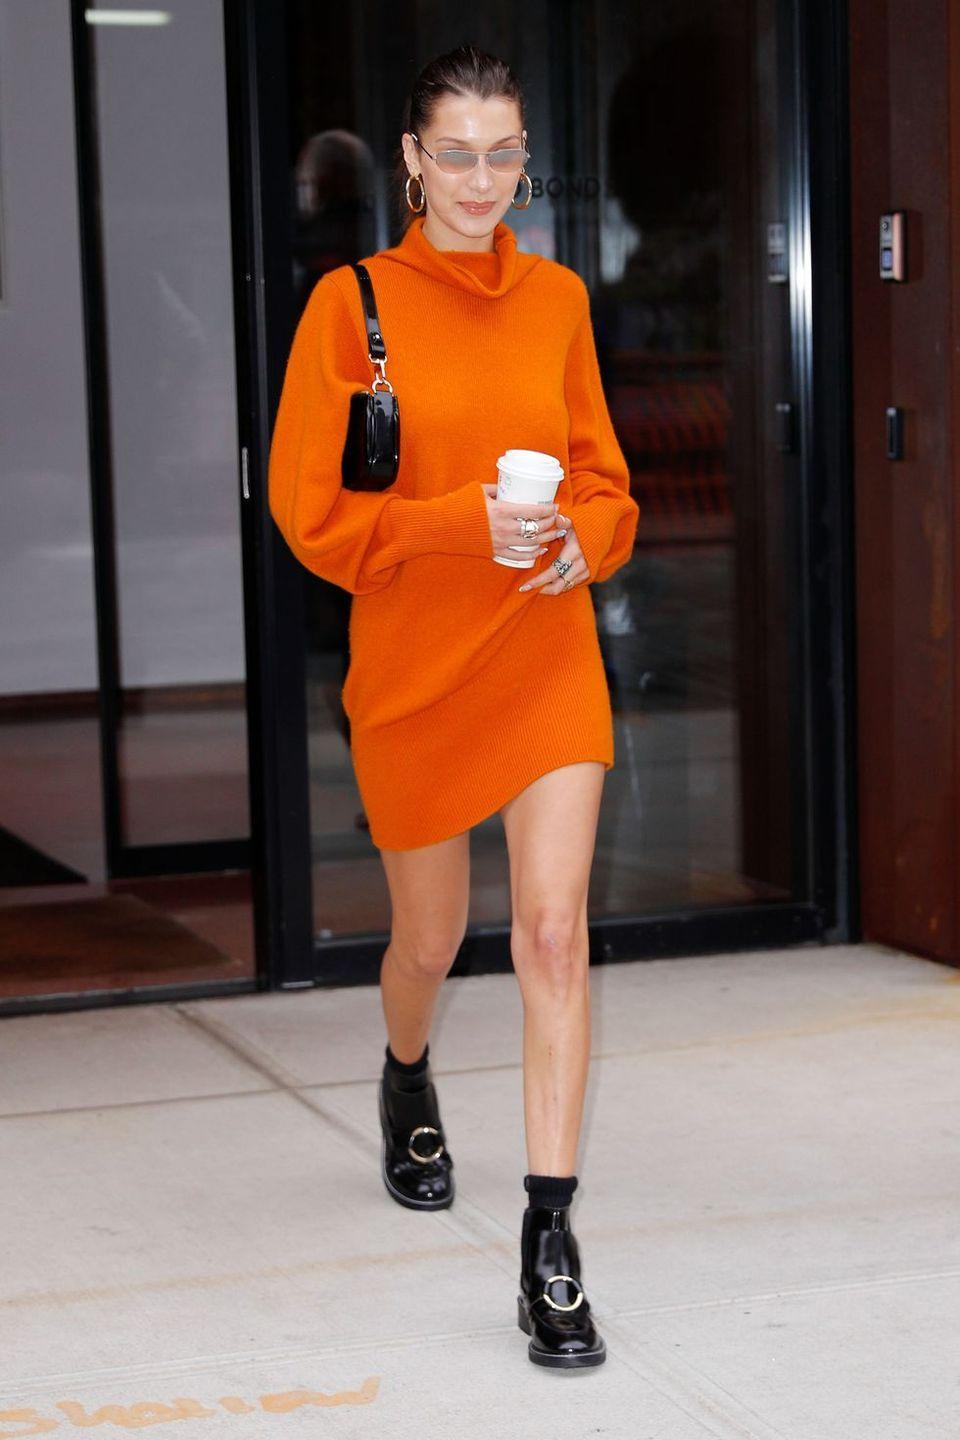 """<p>In an orange turtleneck sweater dress, <a href=""""https://www.luvaj.com/products/amalfi-tube-hoops-gold"""" rel=""""nofollow noopener"""" target=""""_blank"""" data-ylk=""""slk:Luv Aj"""" class=""""link rapid-noclick-resp"""">Luv Aj</a> hoop earrings, retro shades, black patent leather boots and <a href=""""https://www.net-a-porter.com/us/en/product/1086339/by_far/rachel-patent-leather-shoulder-bag"""" rel=""""nofollow noopener"""" target=""""_blank"""" data-ylk=""""slk:By Far"""" class=""""link rapid-noclick-resp"""">By Far</a> purse out in NYC.</p>"""